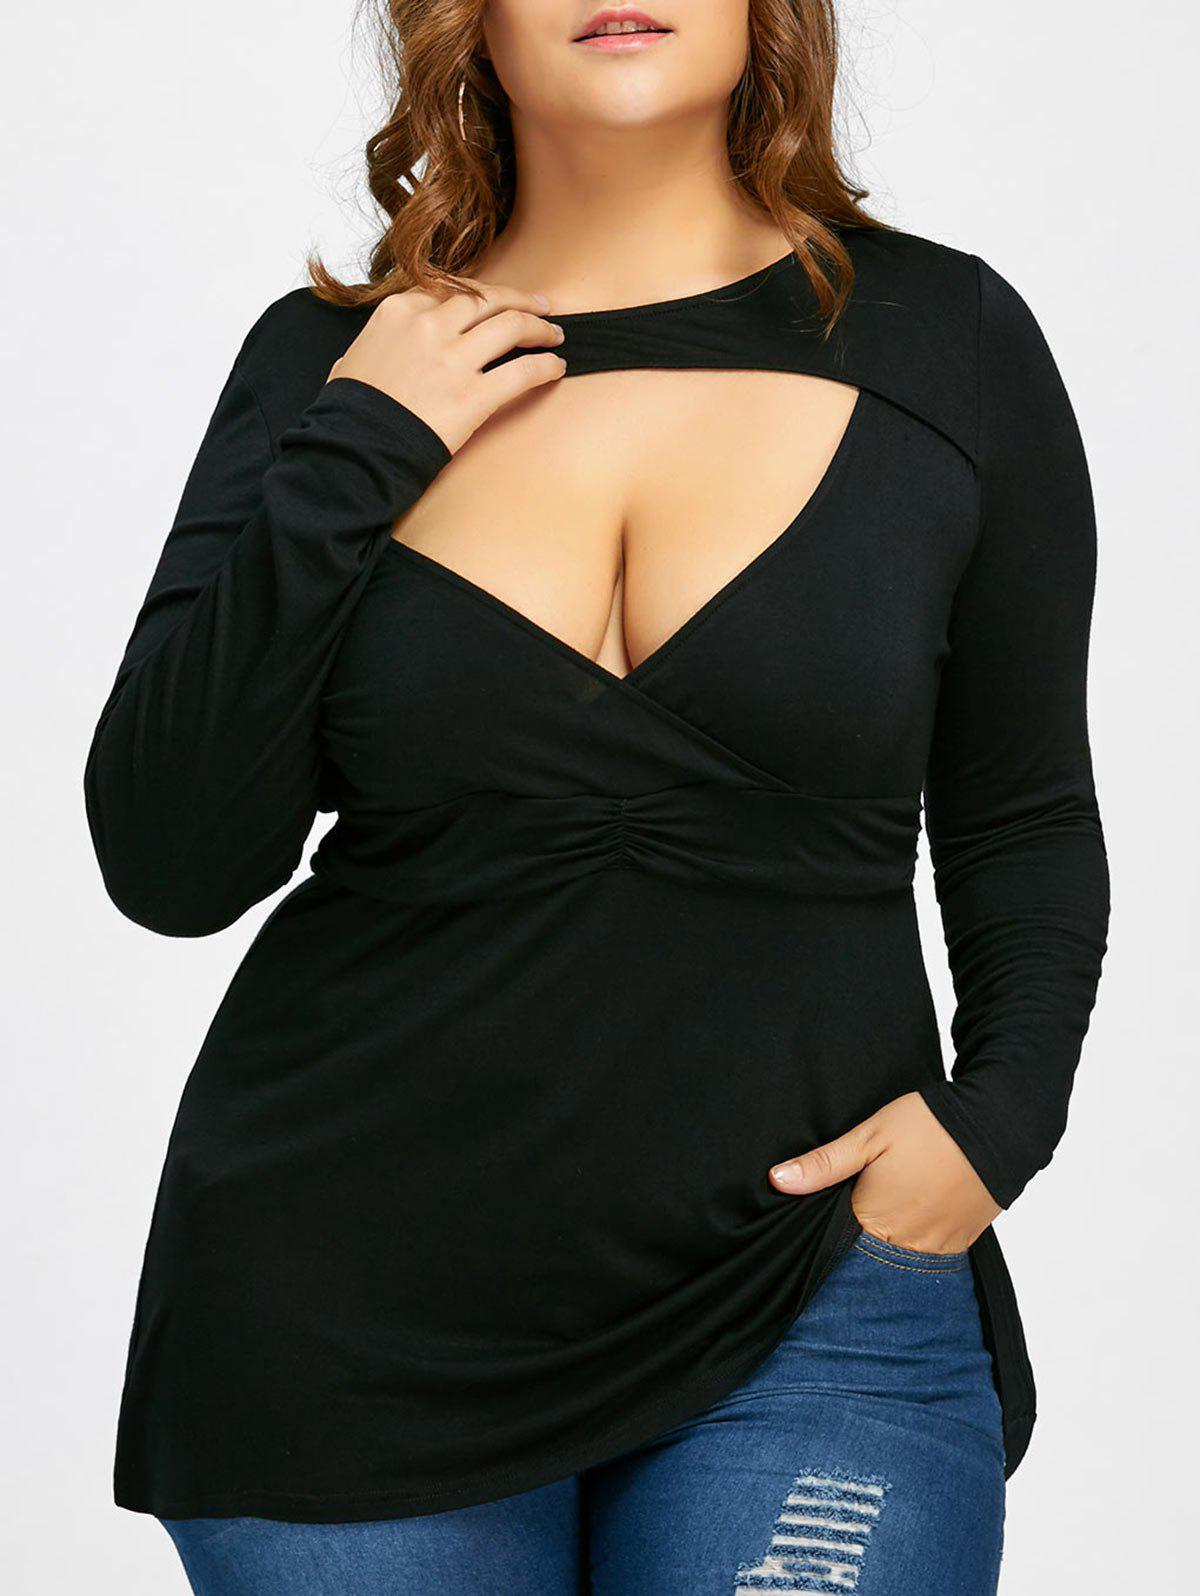 Empire Waist Plus Size Low Cut T-shirtWOMEN<br><br>Size: 3XL; Color: BLACK; Material: Cotton Blends,Spandex; Shirt Length: Long; Sleeve Length: Full; Collar: Crew Neck; Style: Fashion; Season: Fall,Spring; Pattern Type: Solid; Weight: 0.2970kg; Package Contents: 1 x T-shirt;